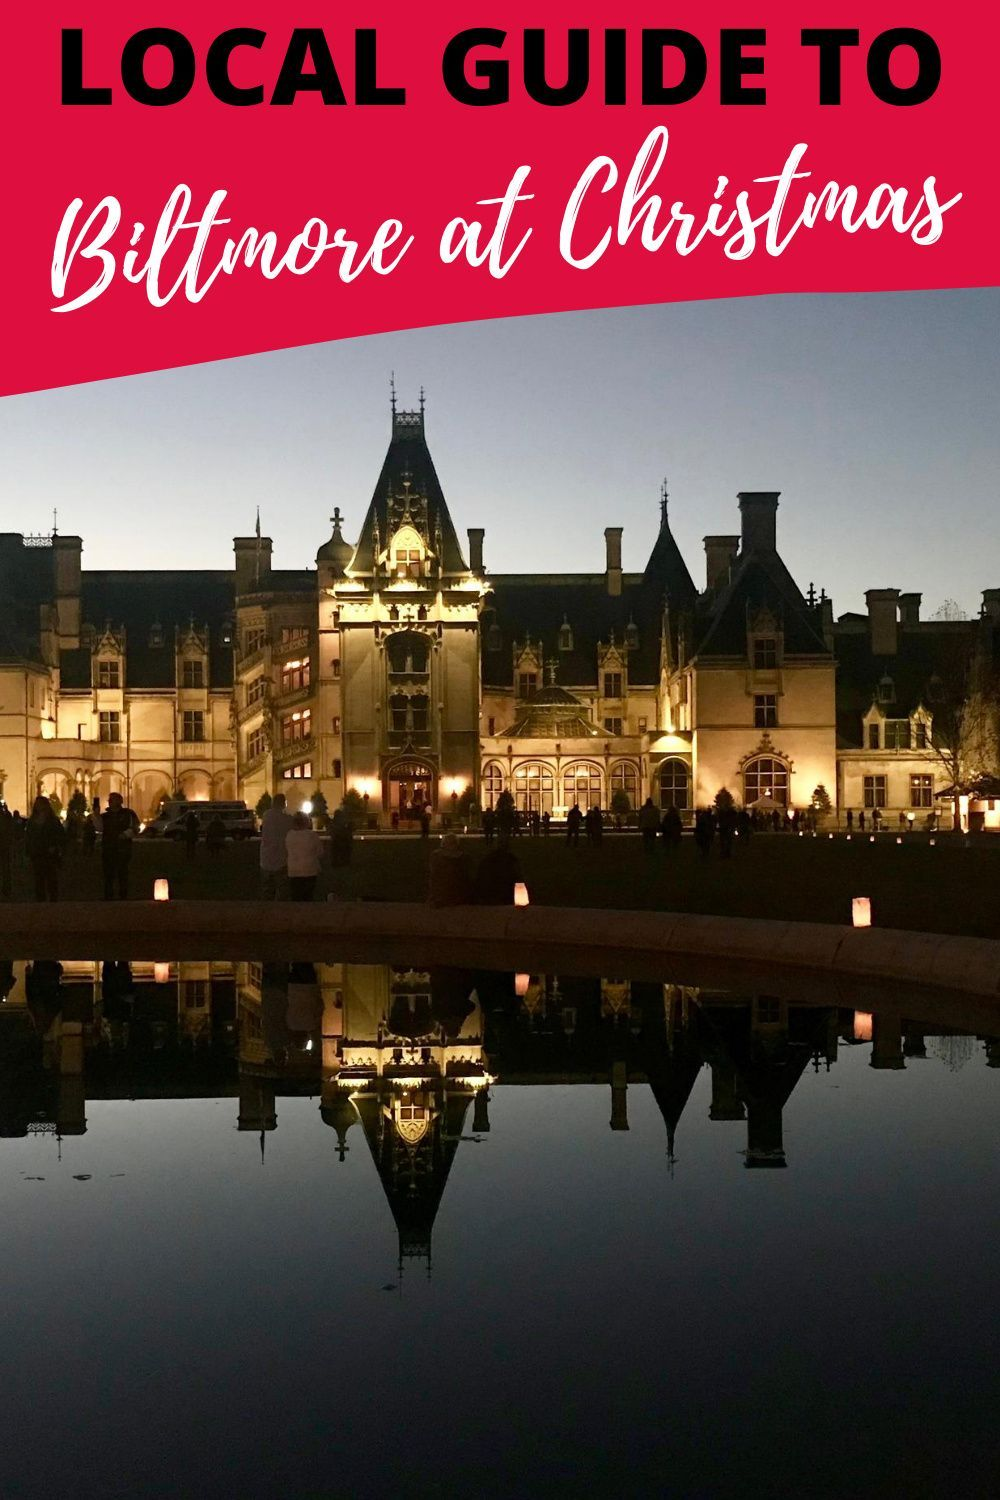 Things To Do In Asheville Christmas 2020 Local Guide to Biltmore at Christmas in 2020 | Asheville things to